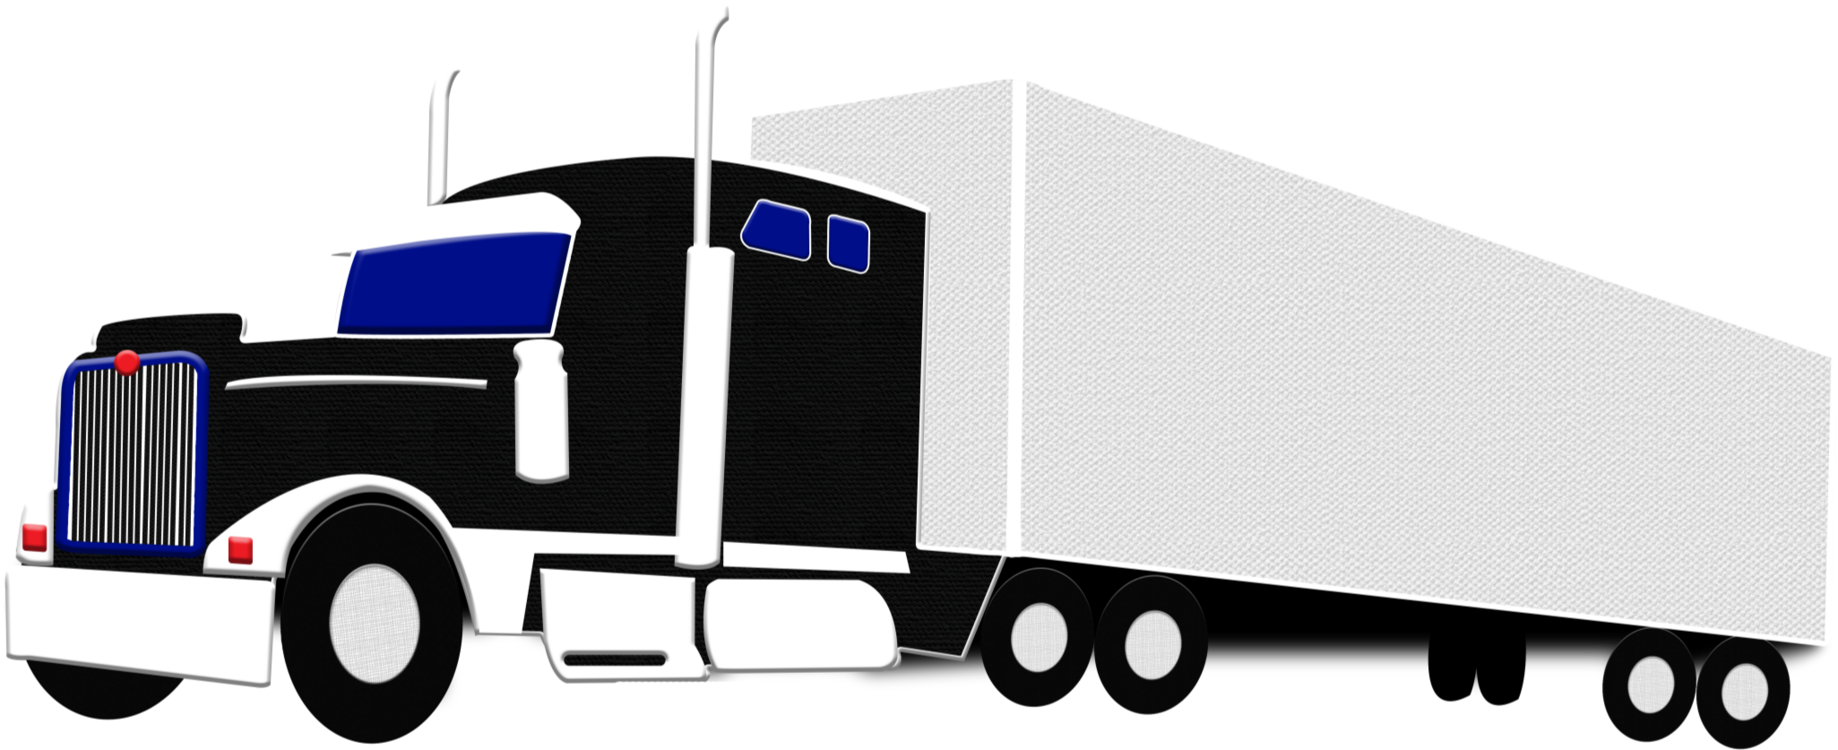 Semi trailer clipart clipart images gallery for free.